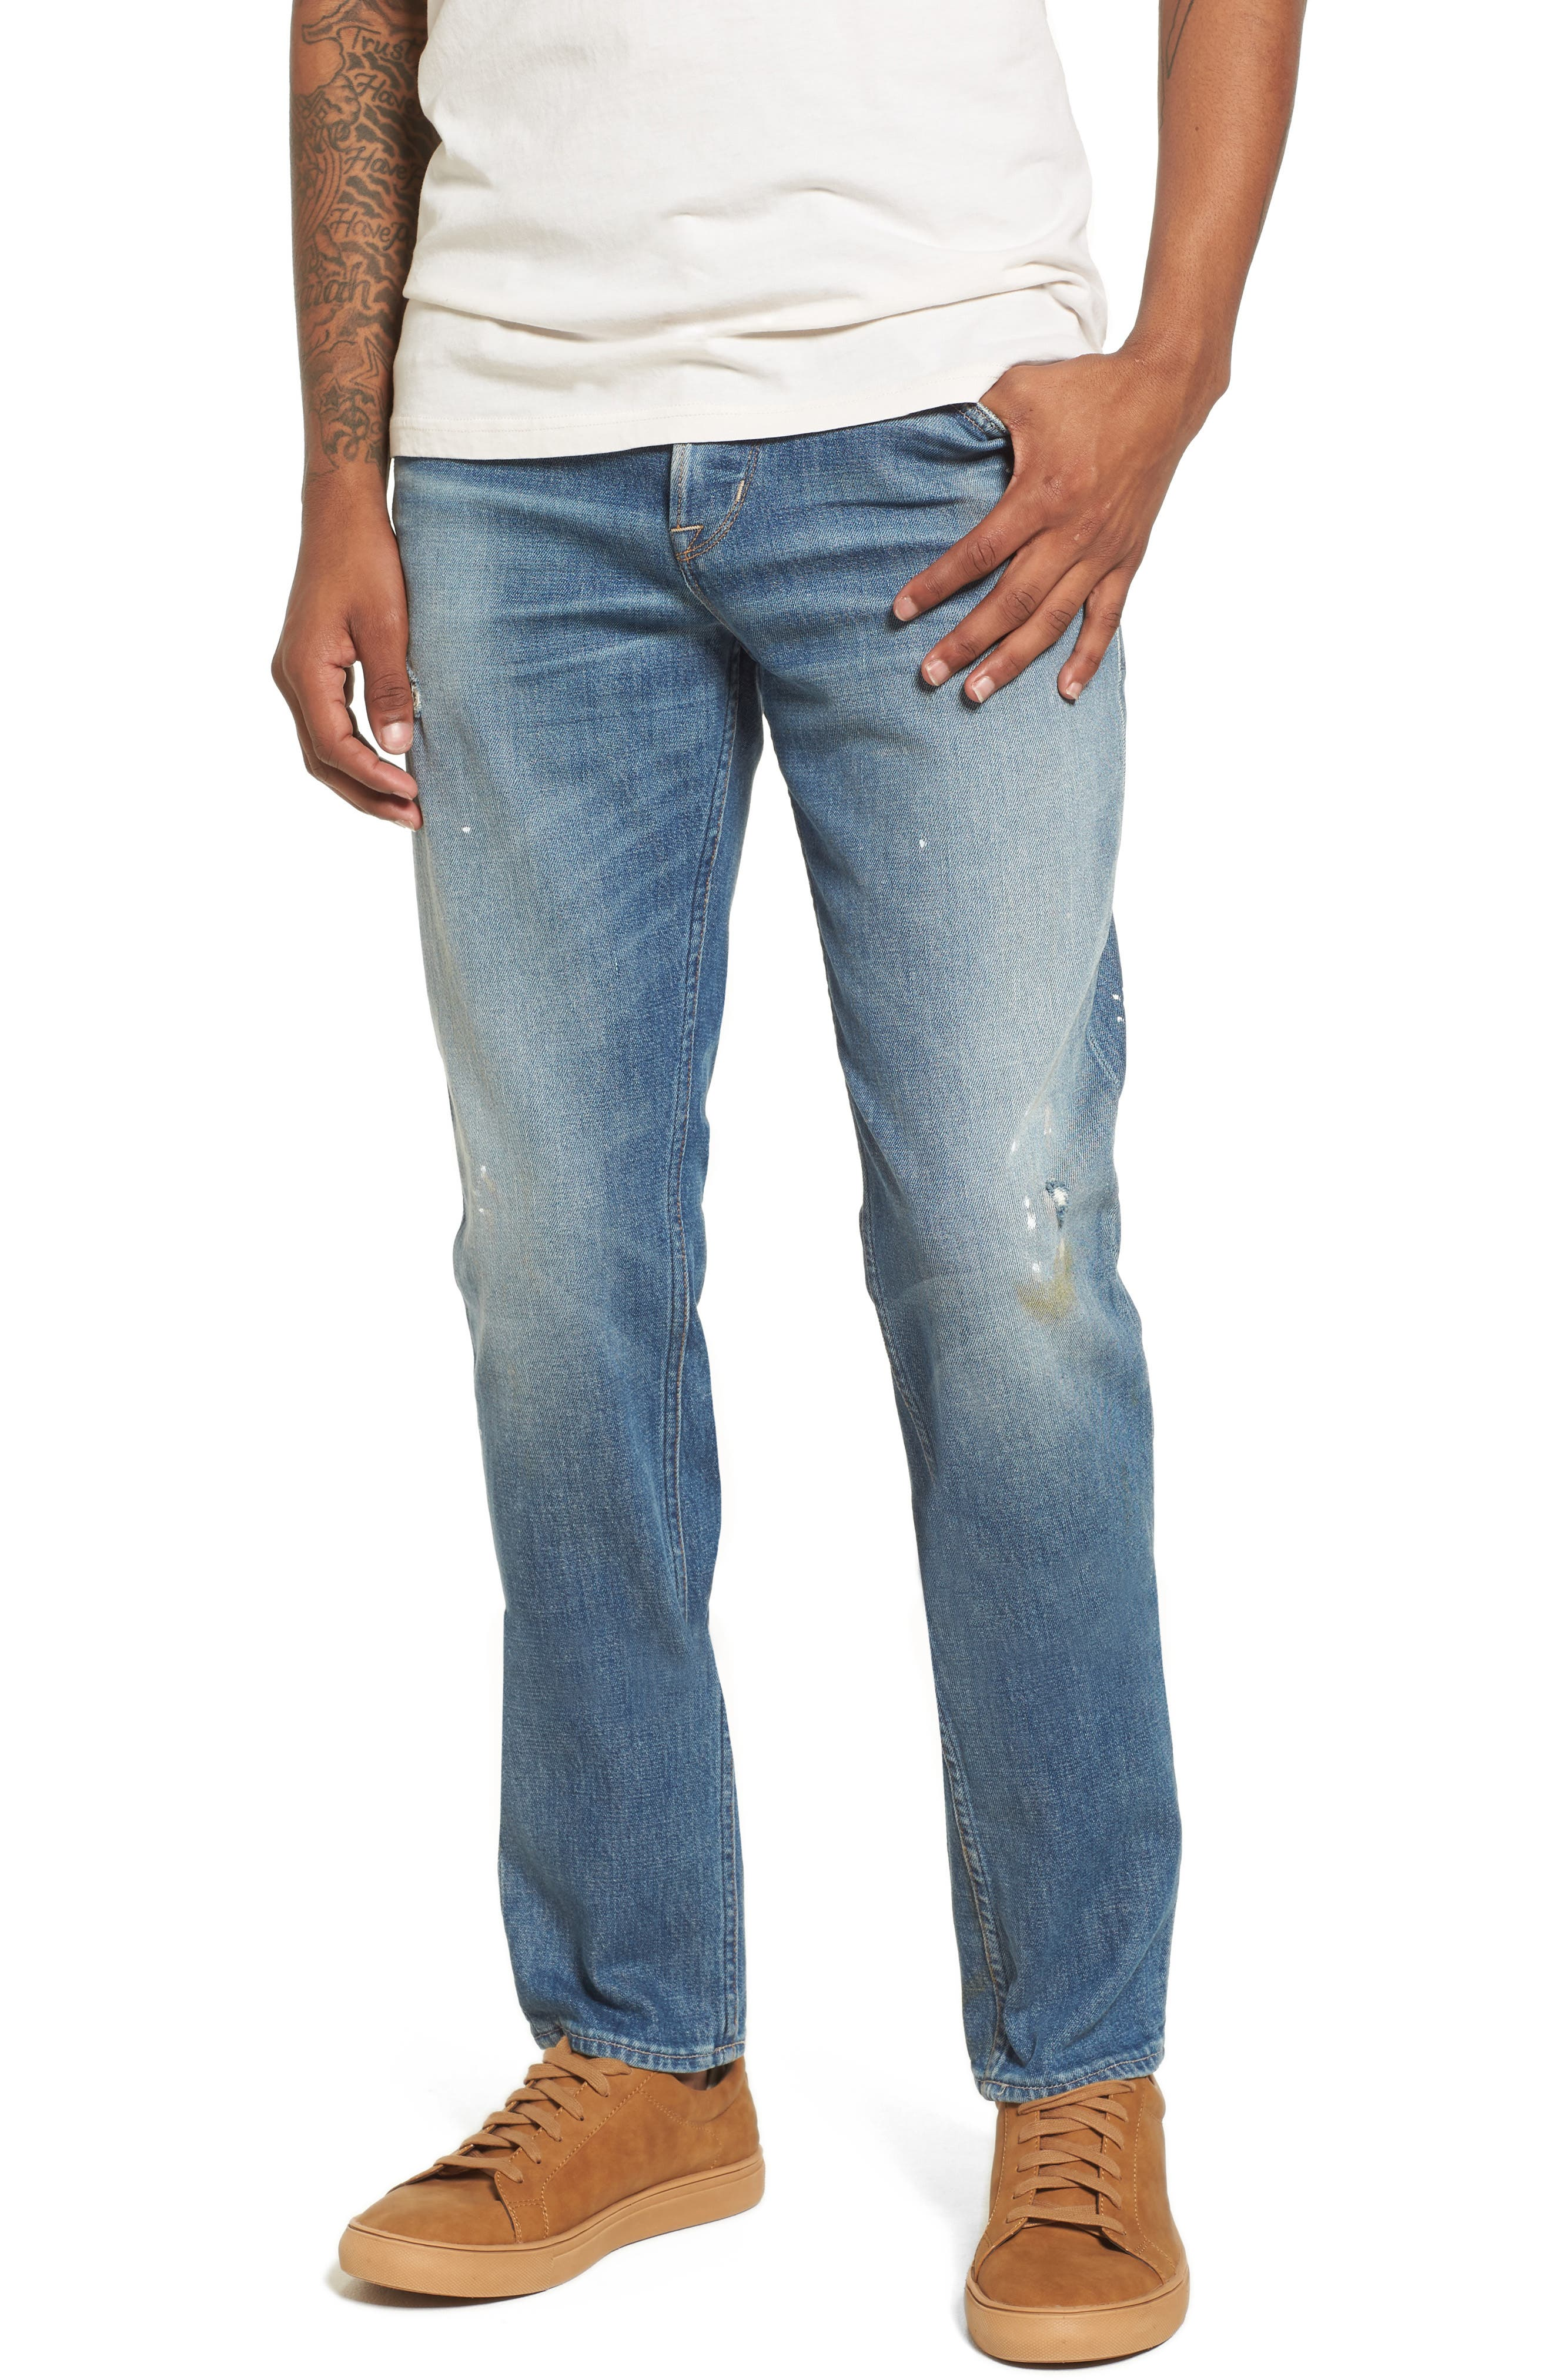 Axl Skinny Fit Jeans,                         Main,                         color, 450